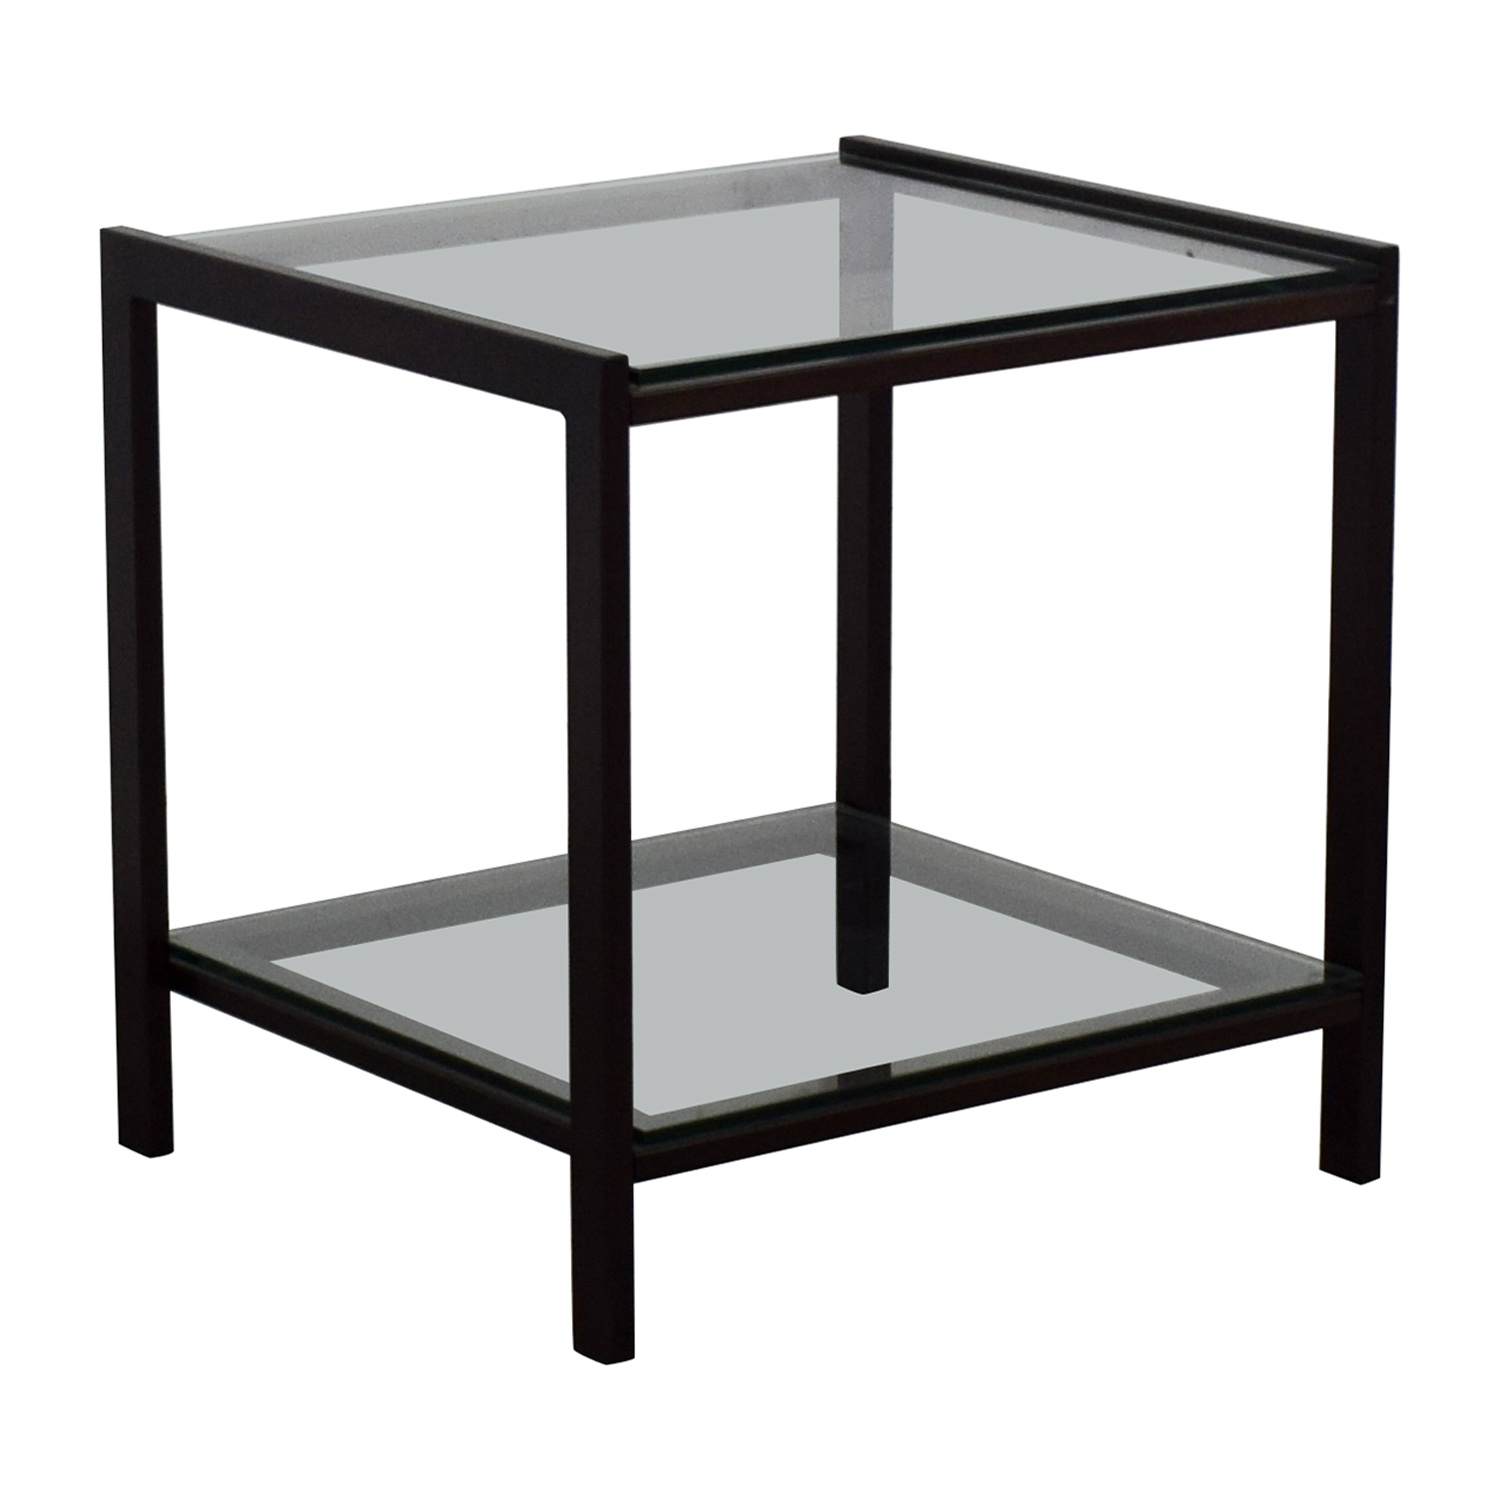 Crate & Barrel Side Table / Tables